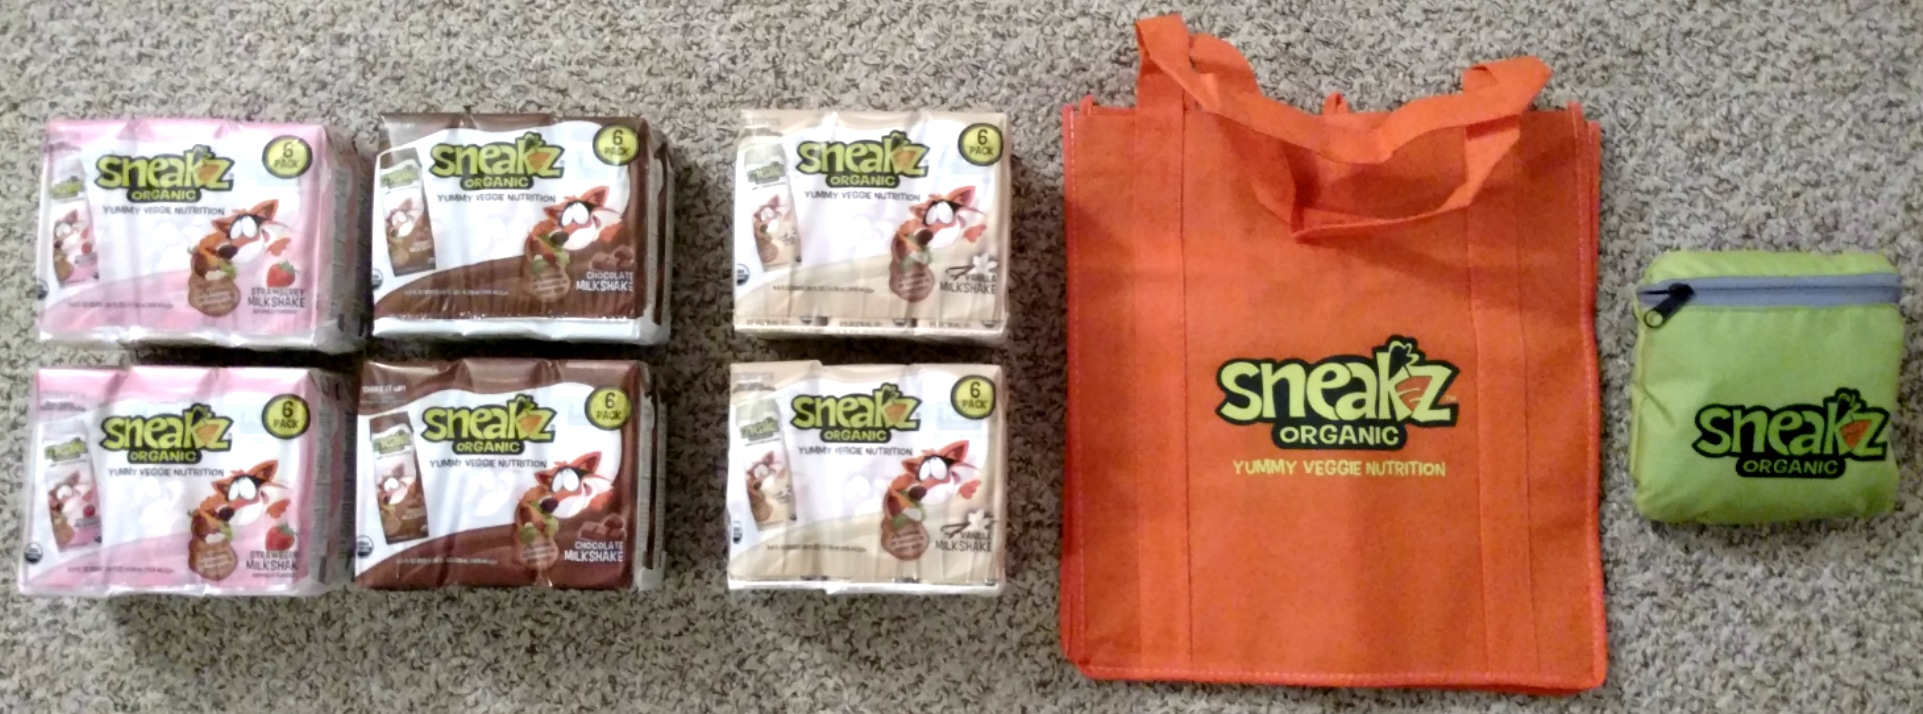 US Japan Fam is giving away 6 six-packs of Sneakz organic milk!!